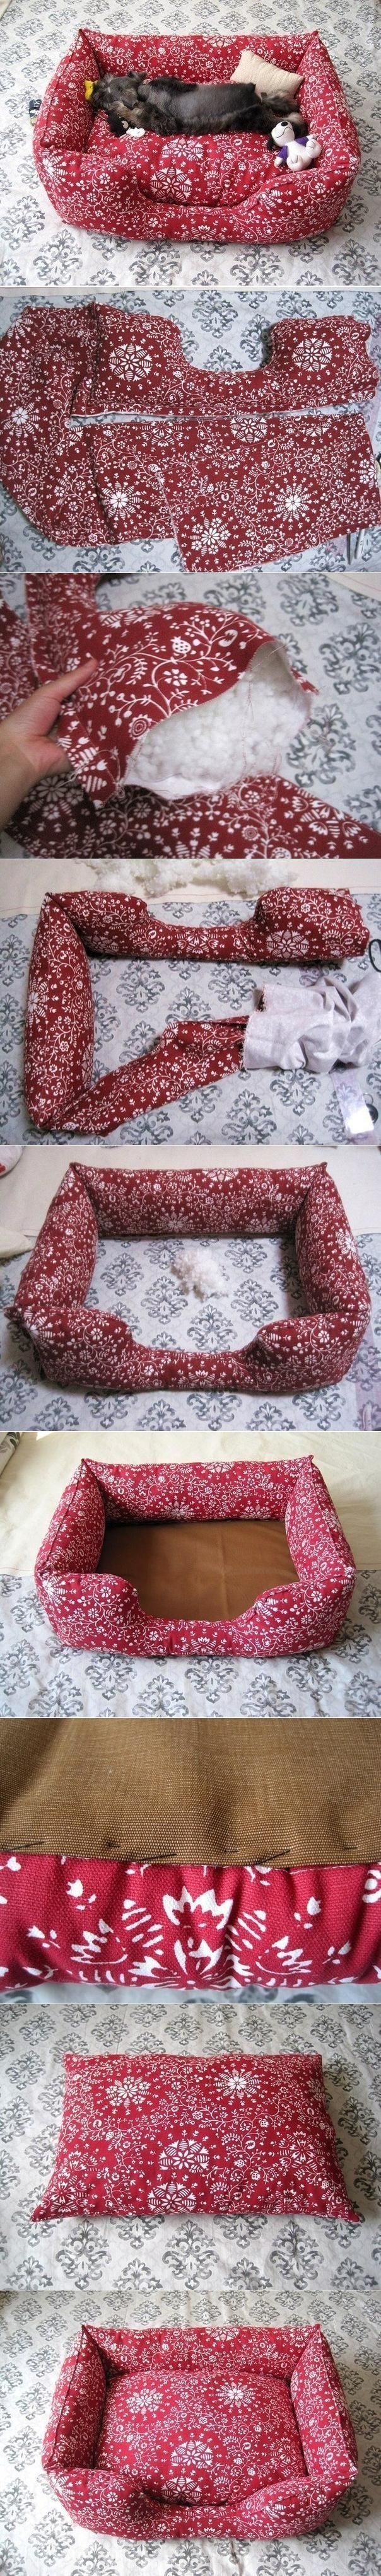 17 of 2017 39 s best dog cushions ideas on pinterest